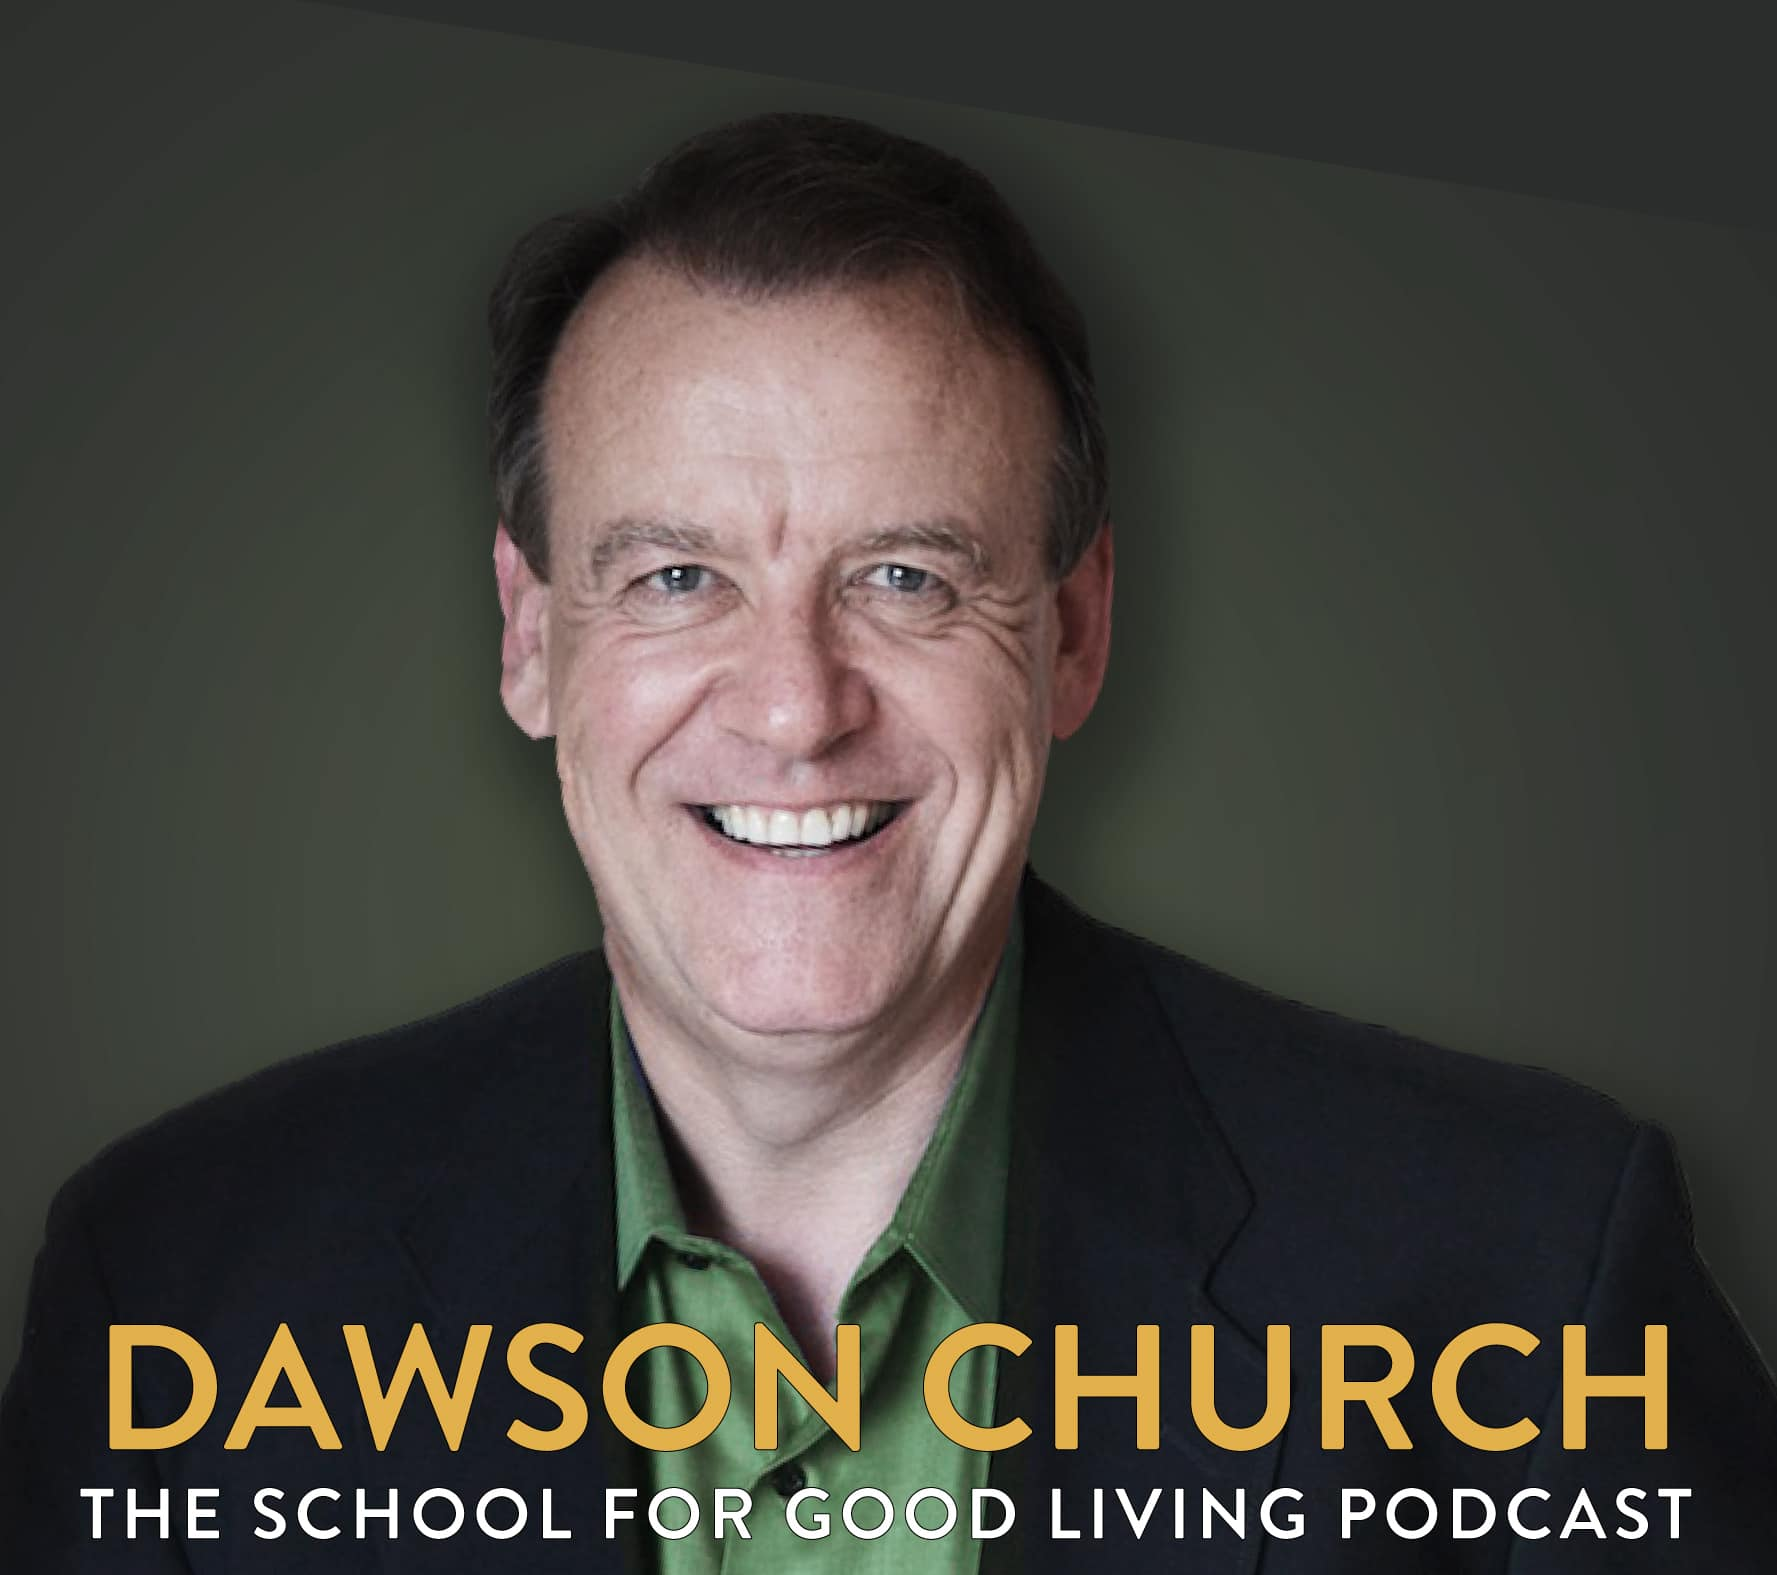 Dawson Church (#163) - Bliss Brain: The Neuroscience of Remodeling Your Brain for Resilience, Creativity, and Joy